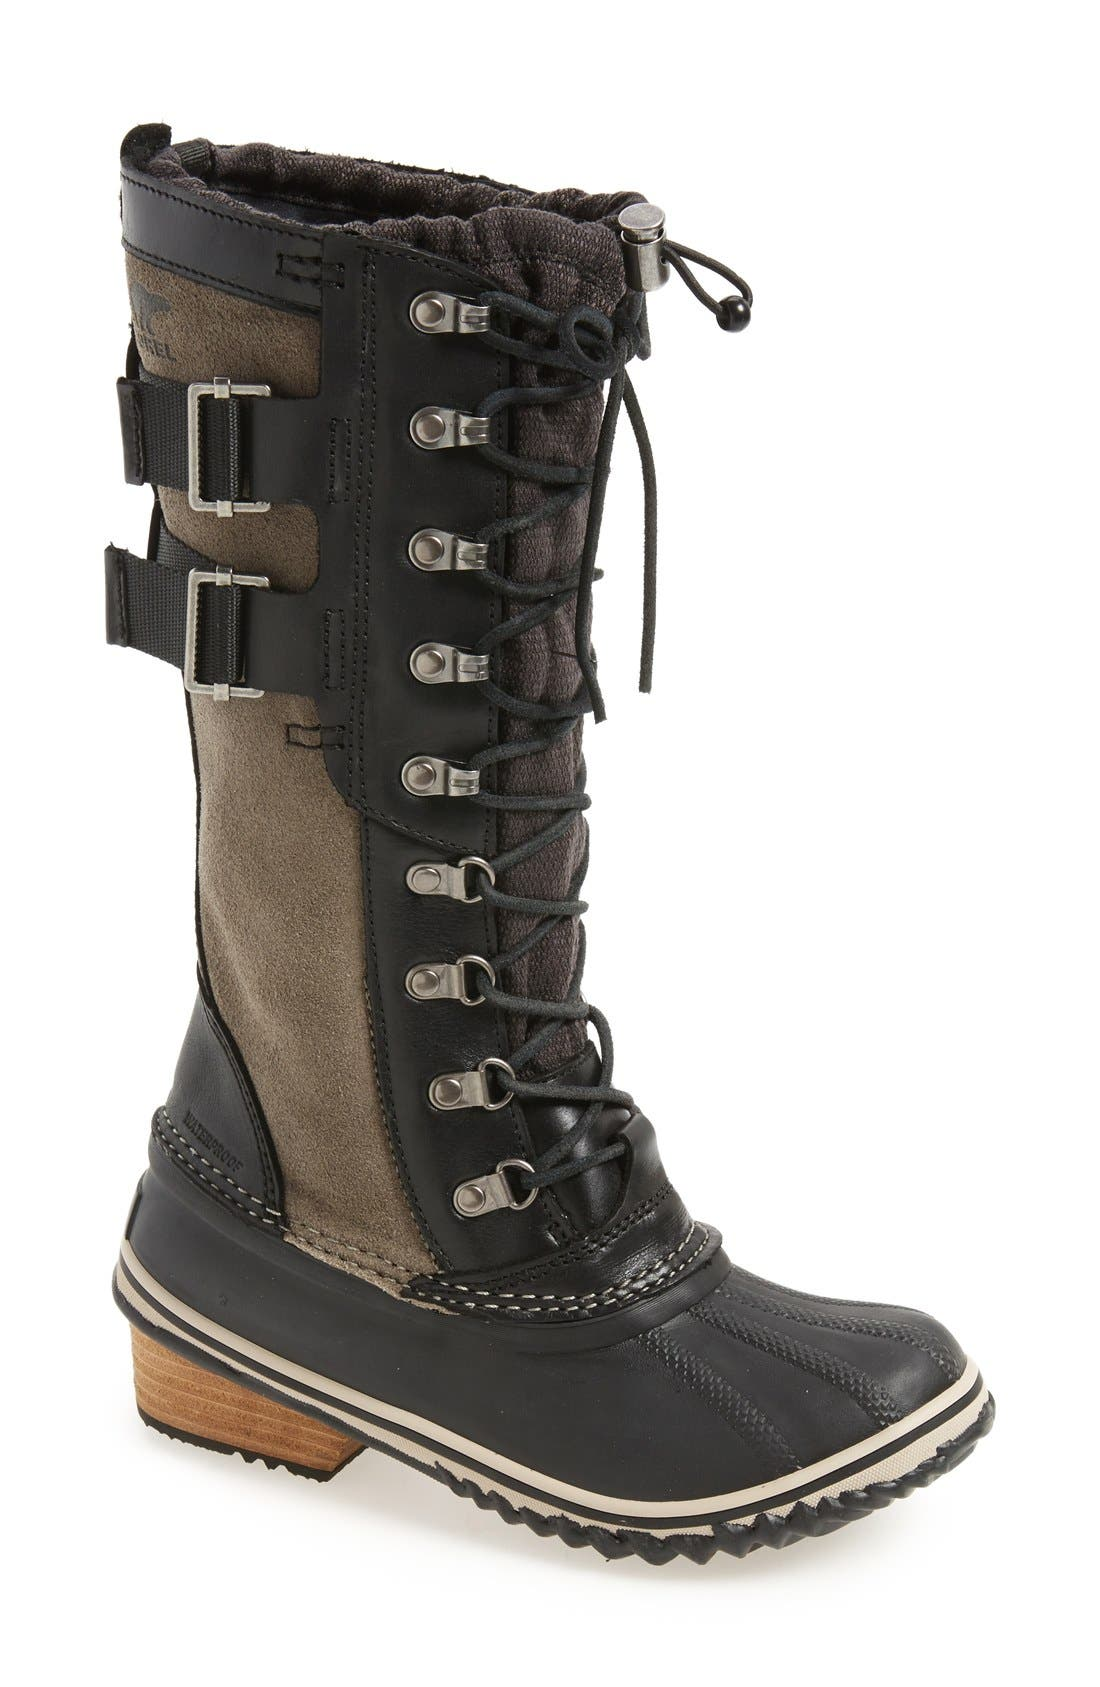 Alternate Image 1 Selected - SOREL 'Conquest Carly II' Waterproof Mid Calf Boot (Women)